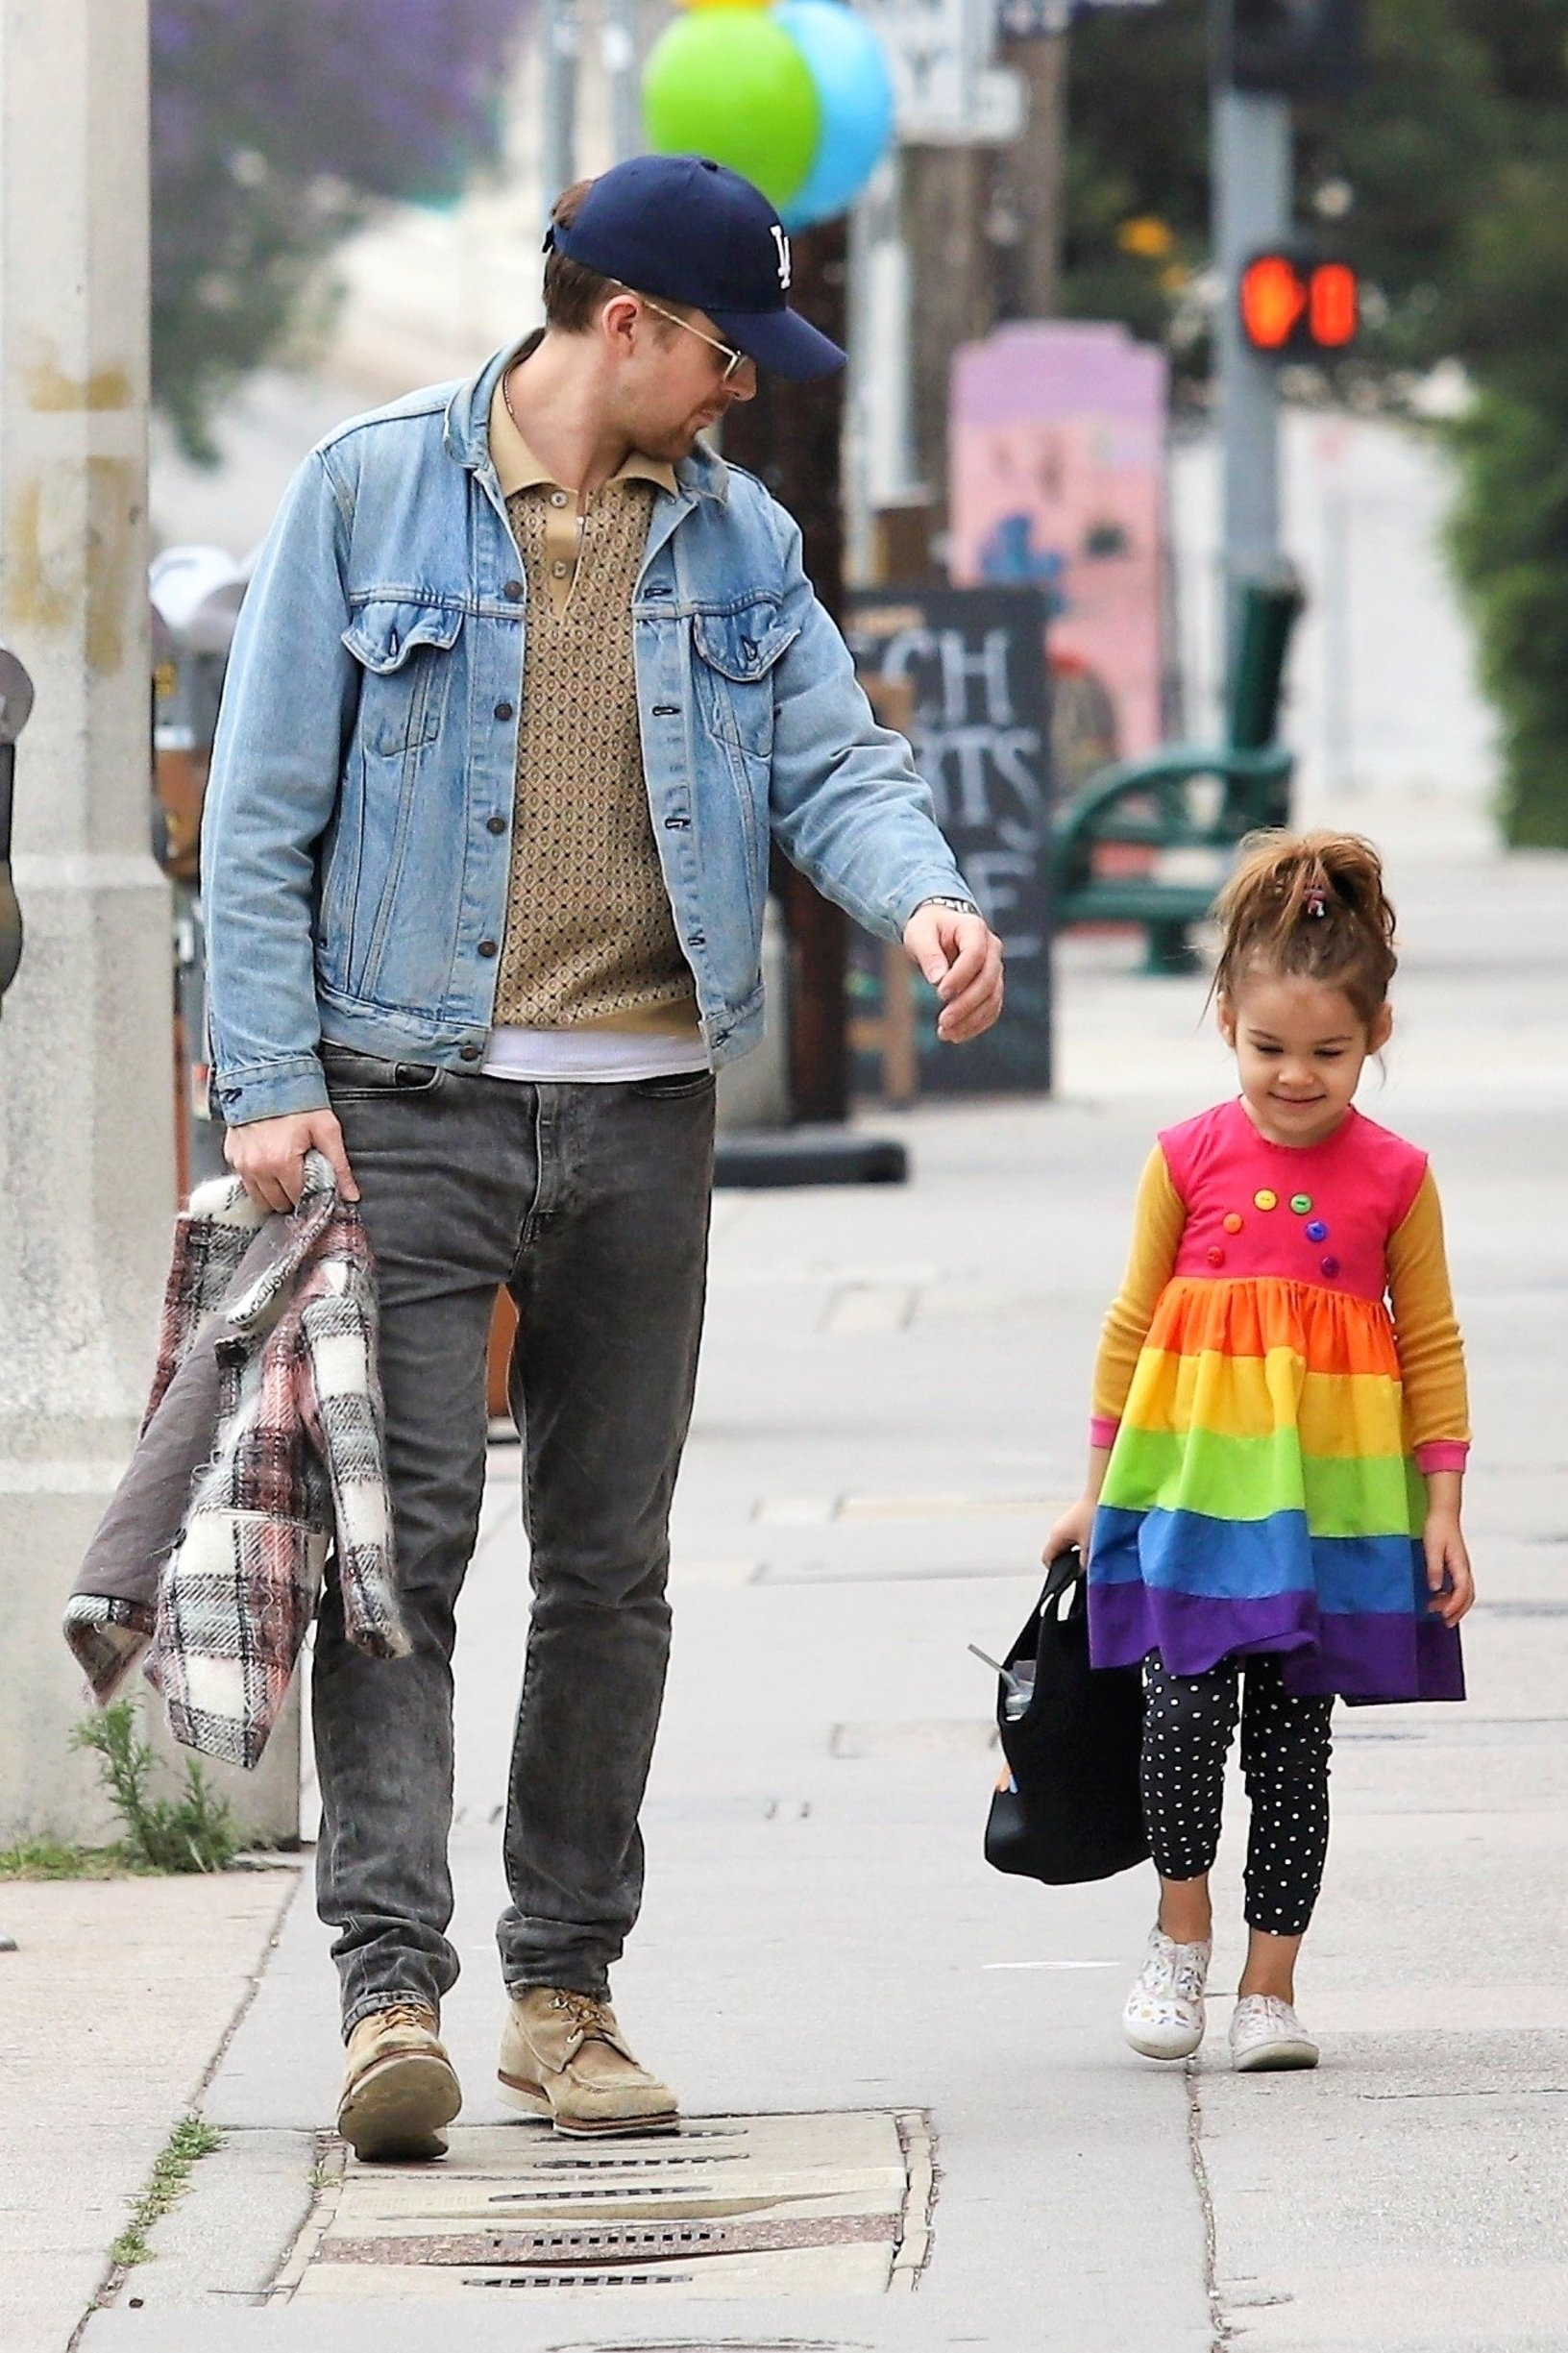 Los Angeles, CA  - *EXCLUSIVE*  - Actor Ryan Gosling takes a stroll with his little one Esmeralda Gosling. The little bundle of sunshine dons a cute rainbow striped dress with polka dotted pants. Ryan keeps things casual in a light blue denim jacket and faded black pants.  Pictured: Ryan Gosling    *UK Clients - Pictures Containing Children Please Pixelate Face Prior To Publication*, Image: 432921288, License: Rights-managed, Restrictions: , Model Release: no, Credit line: Profimedia, Backgrid USA